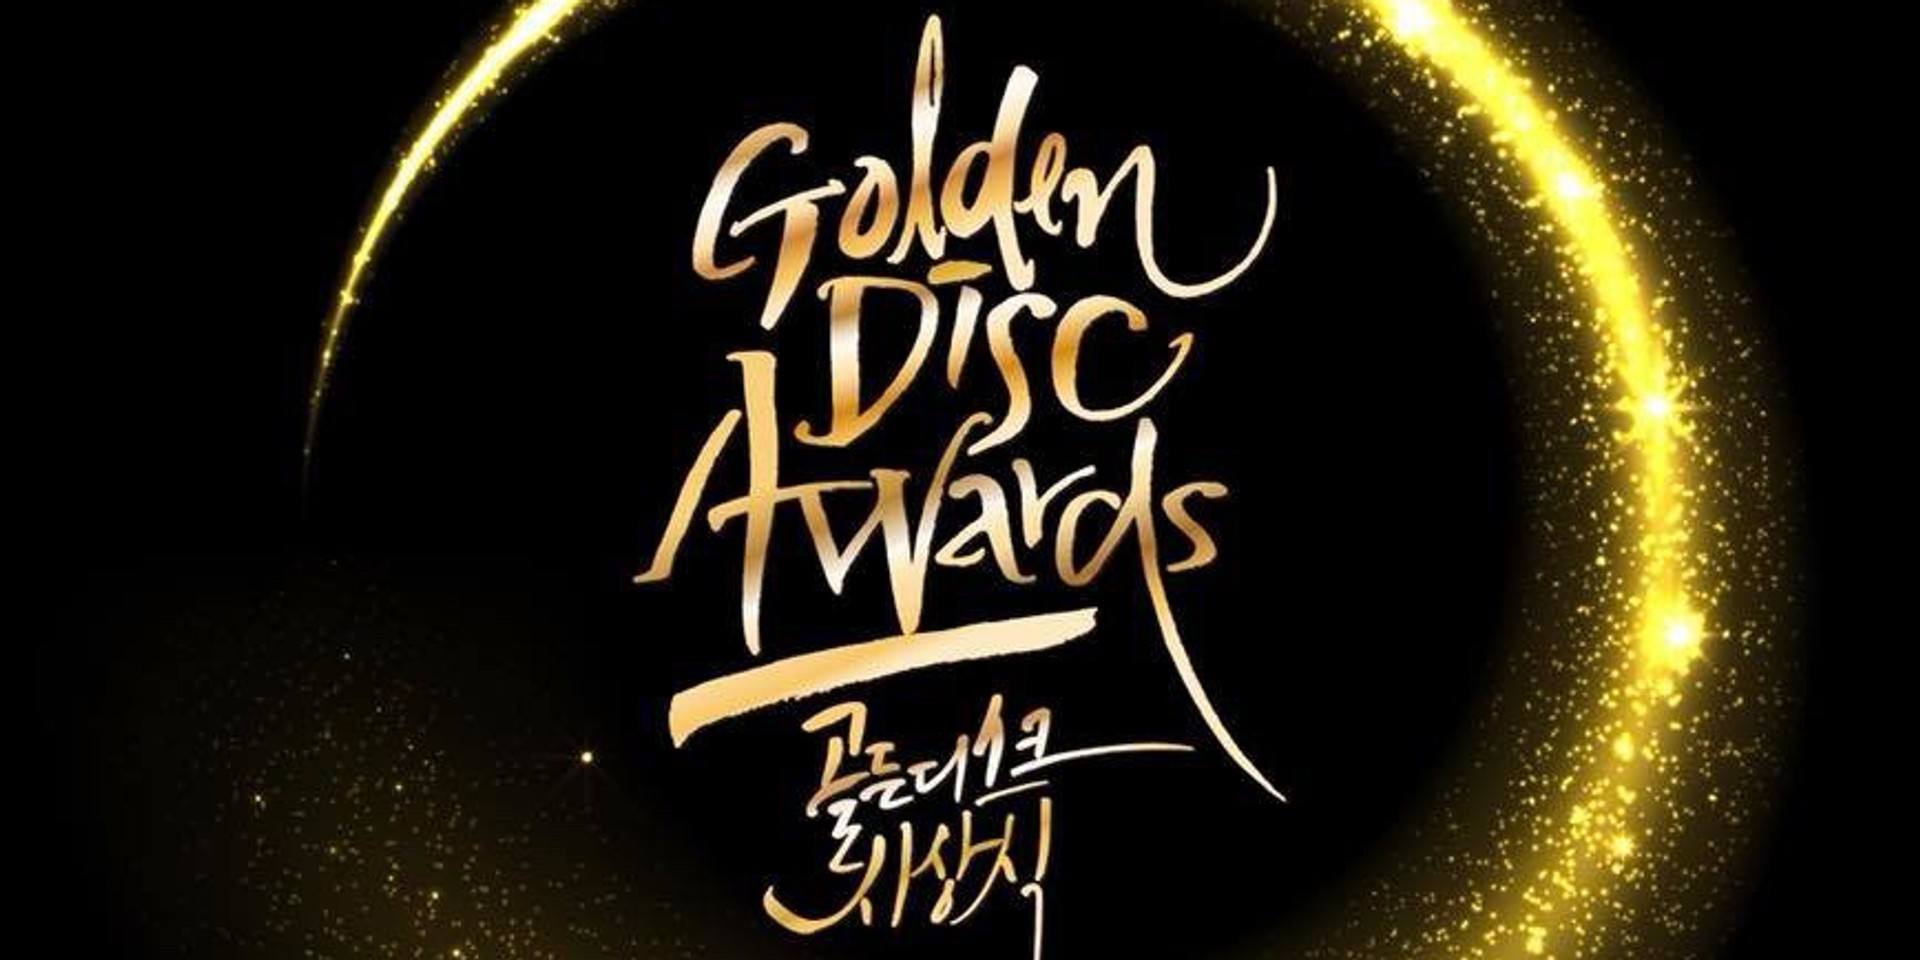 """GDA Secretariat: """"The location for the Golden Disc Awards is not confirmed yet."""""""